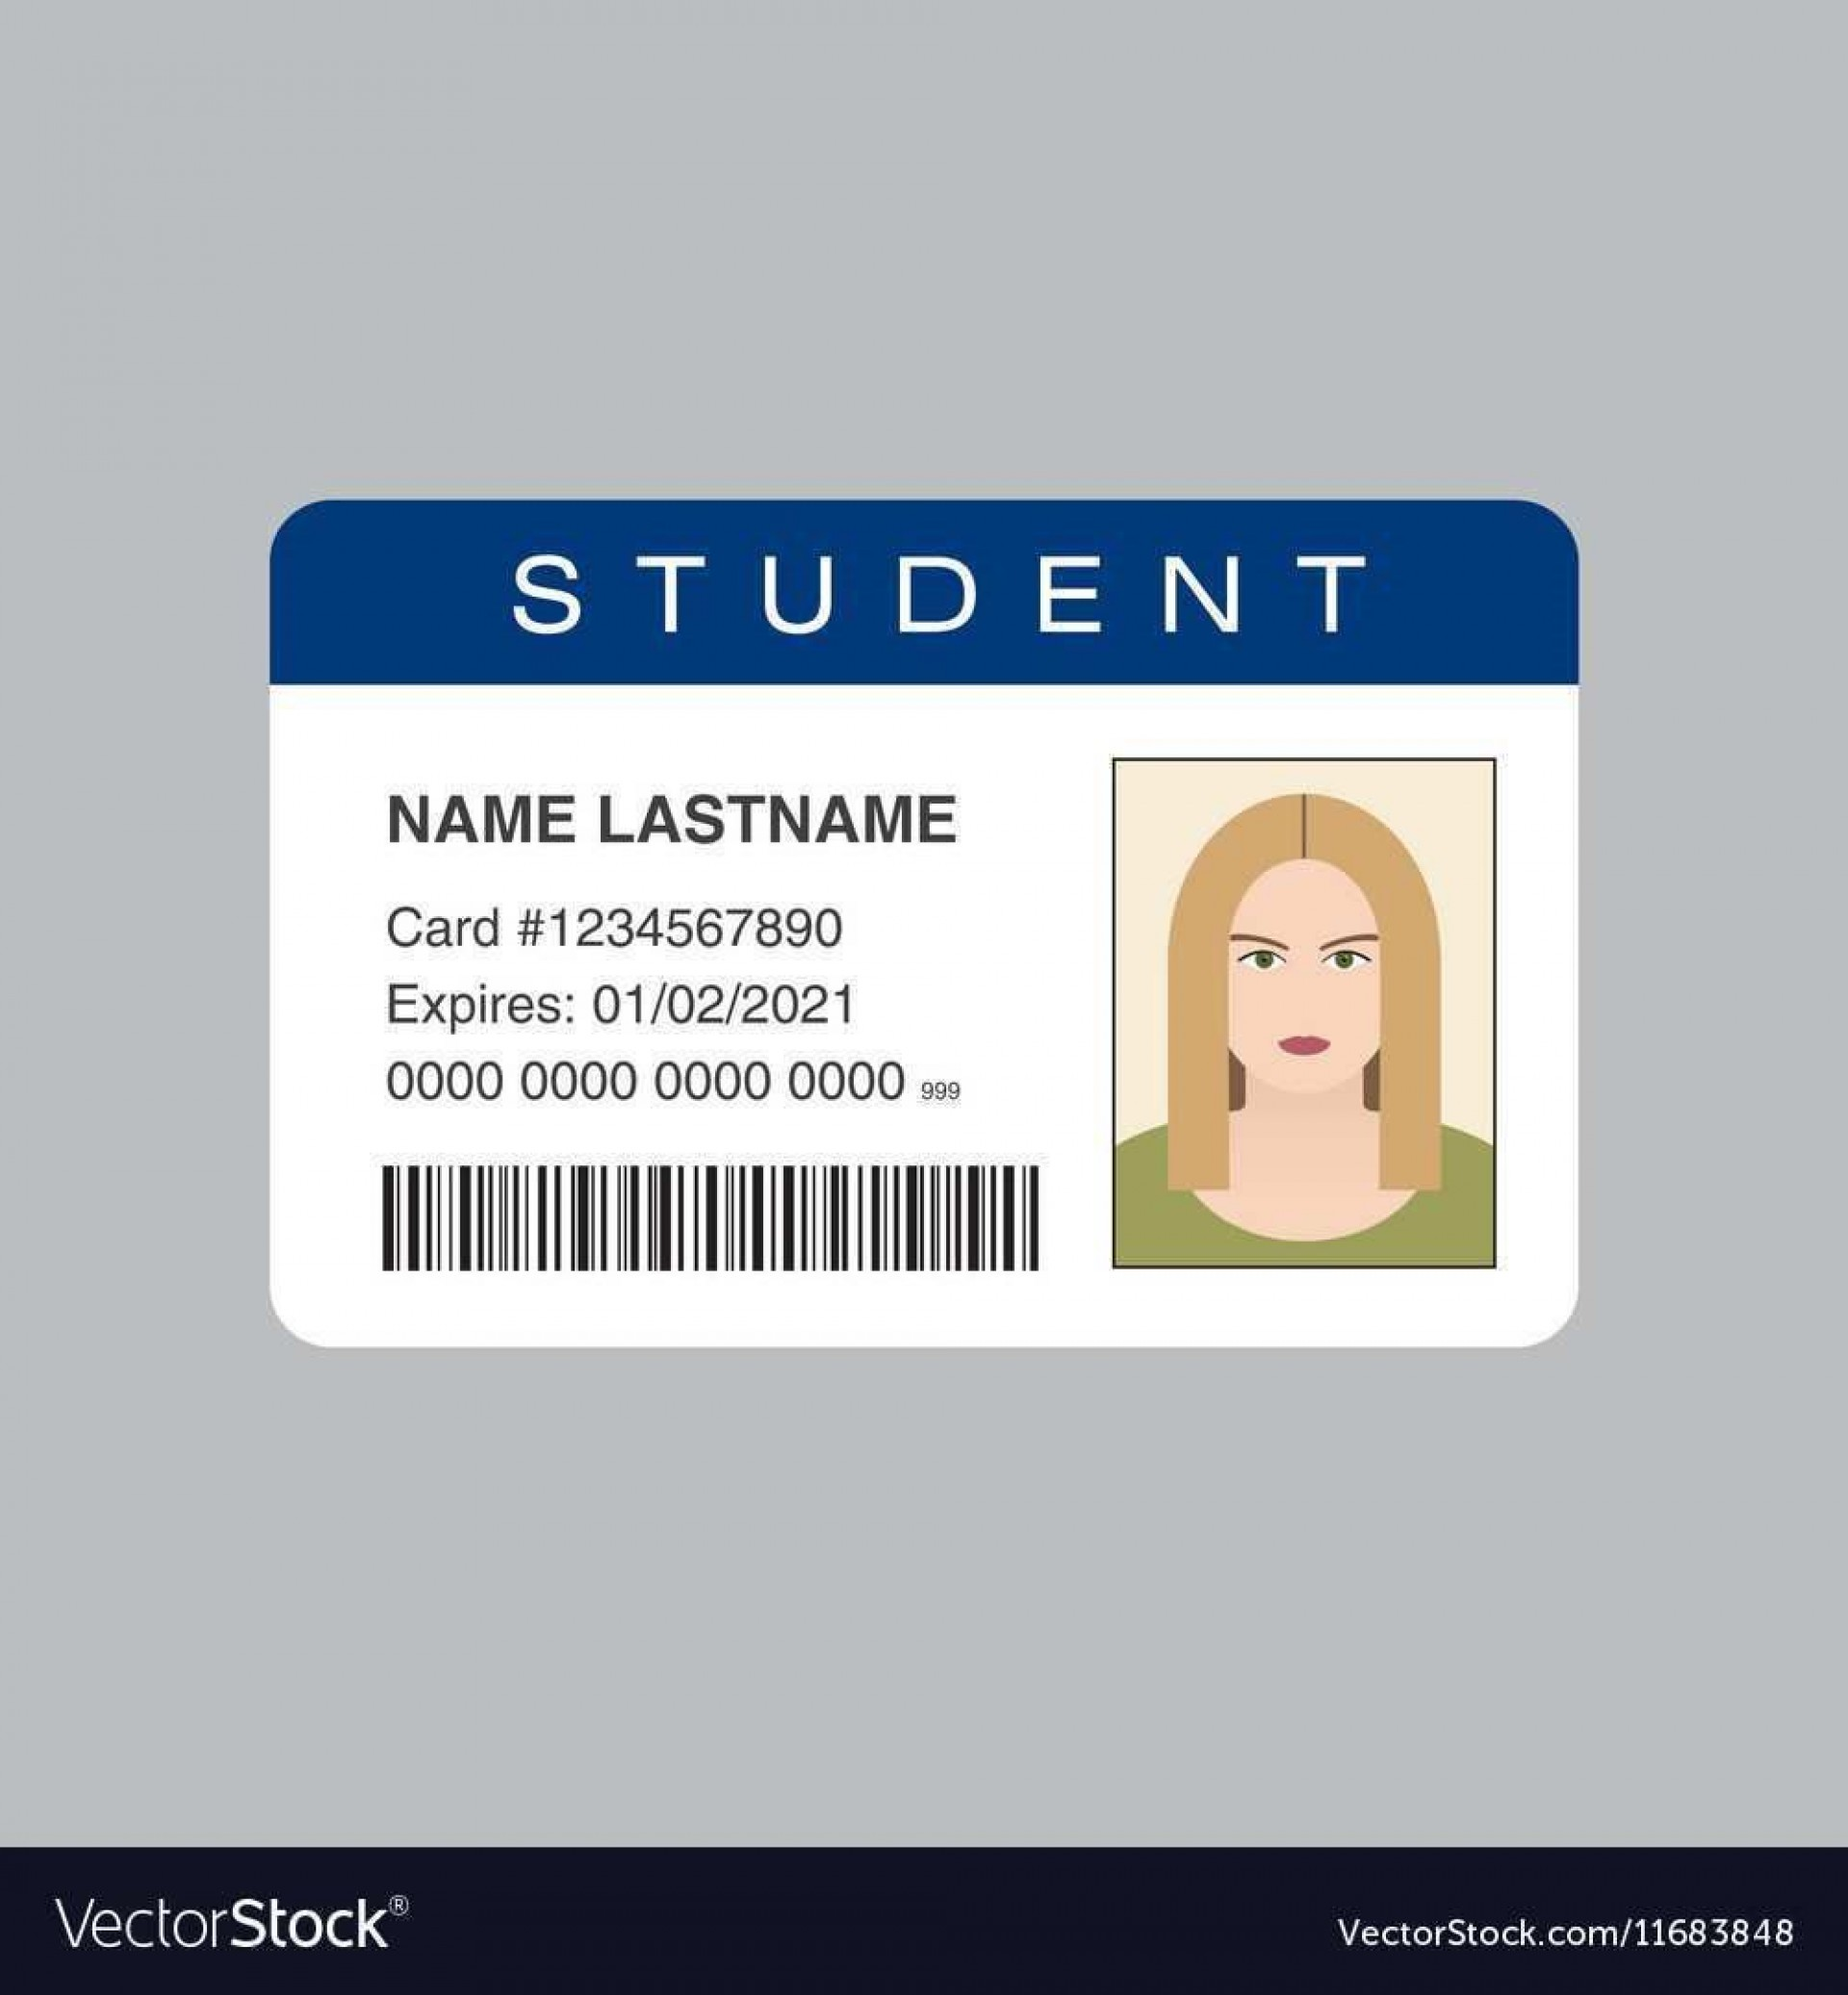 002 Fantastic Student Id Card Template High Resolution  Psd Free School Microsoft Word Download1920